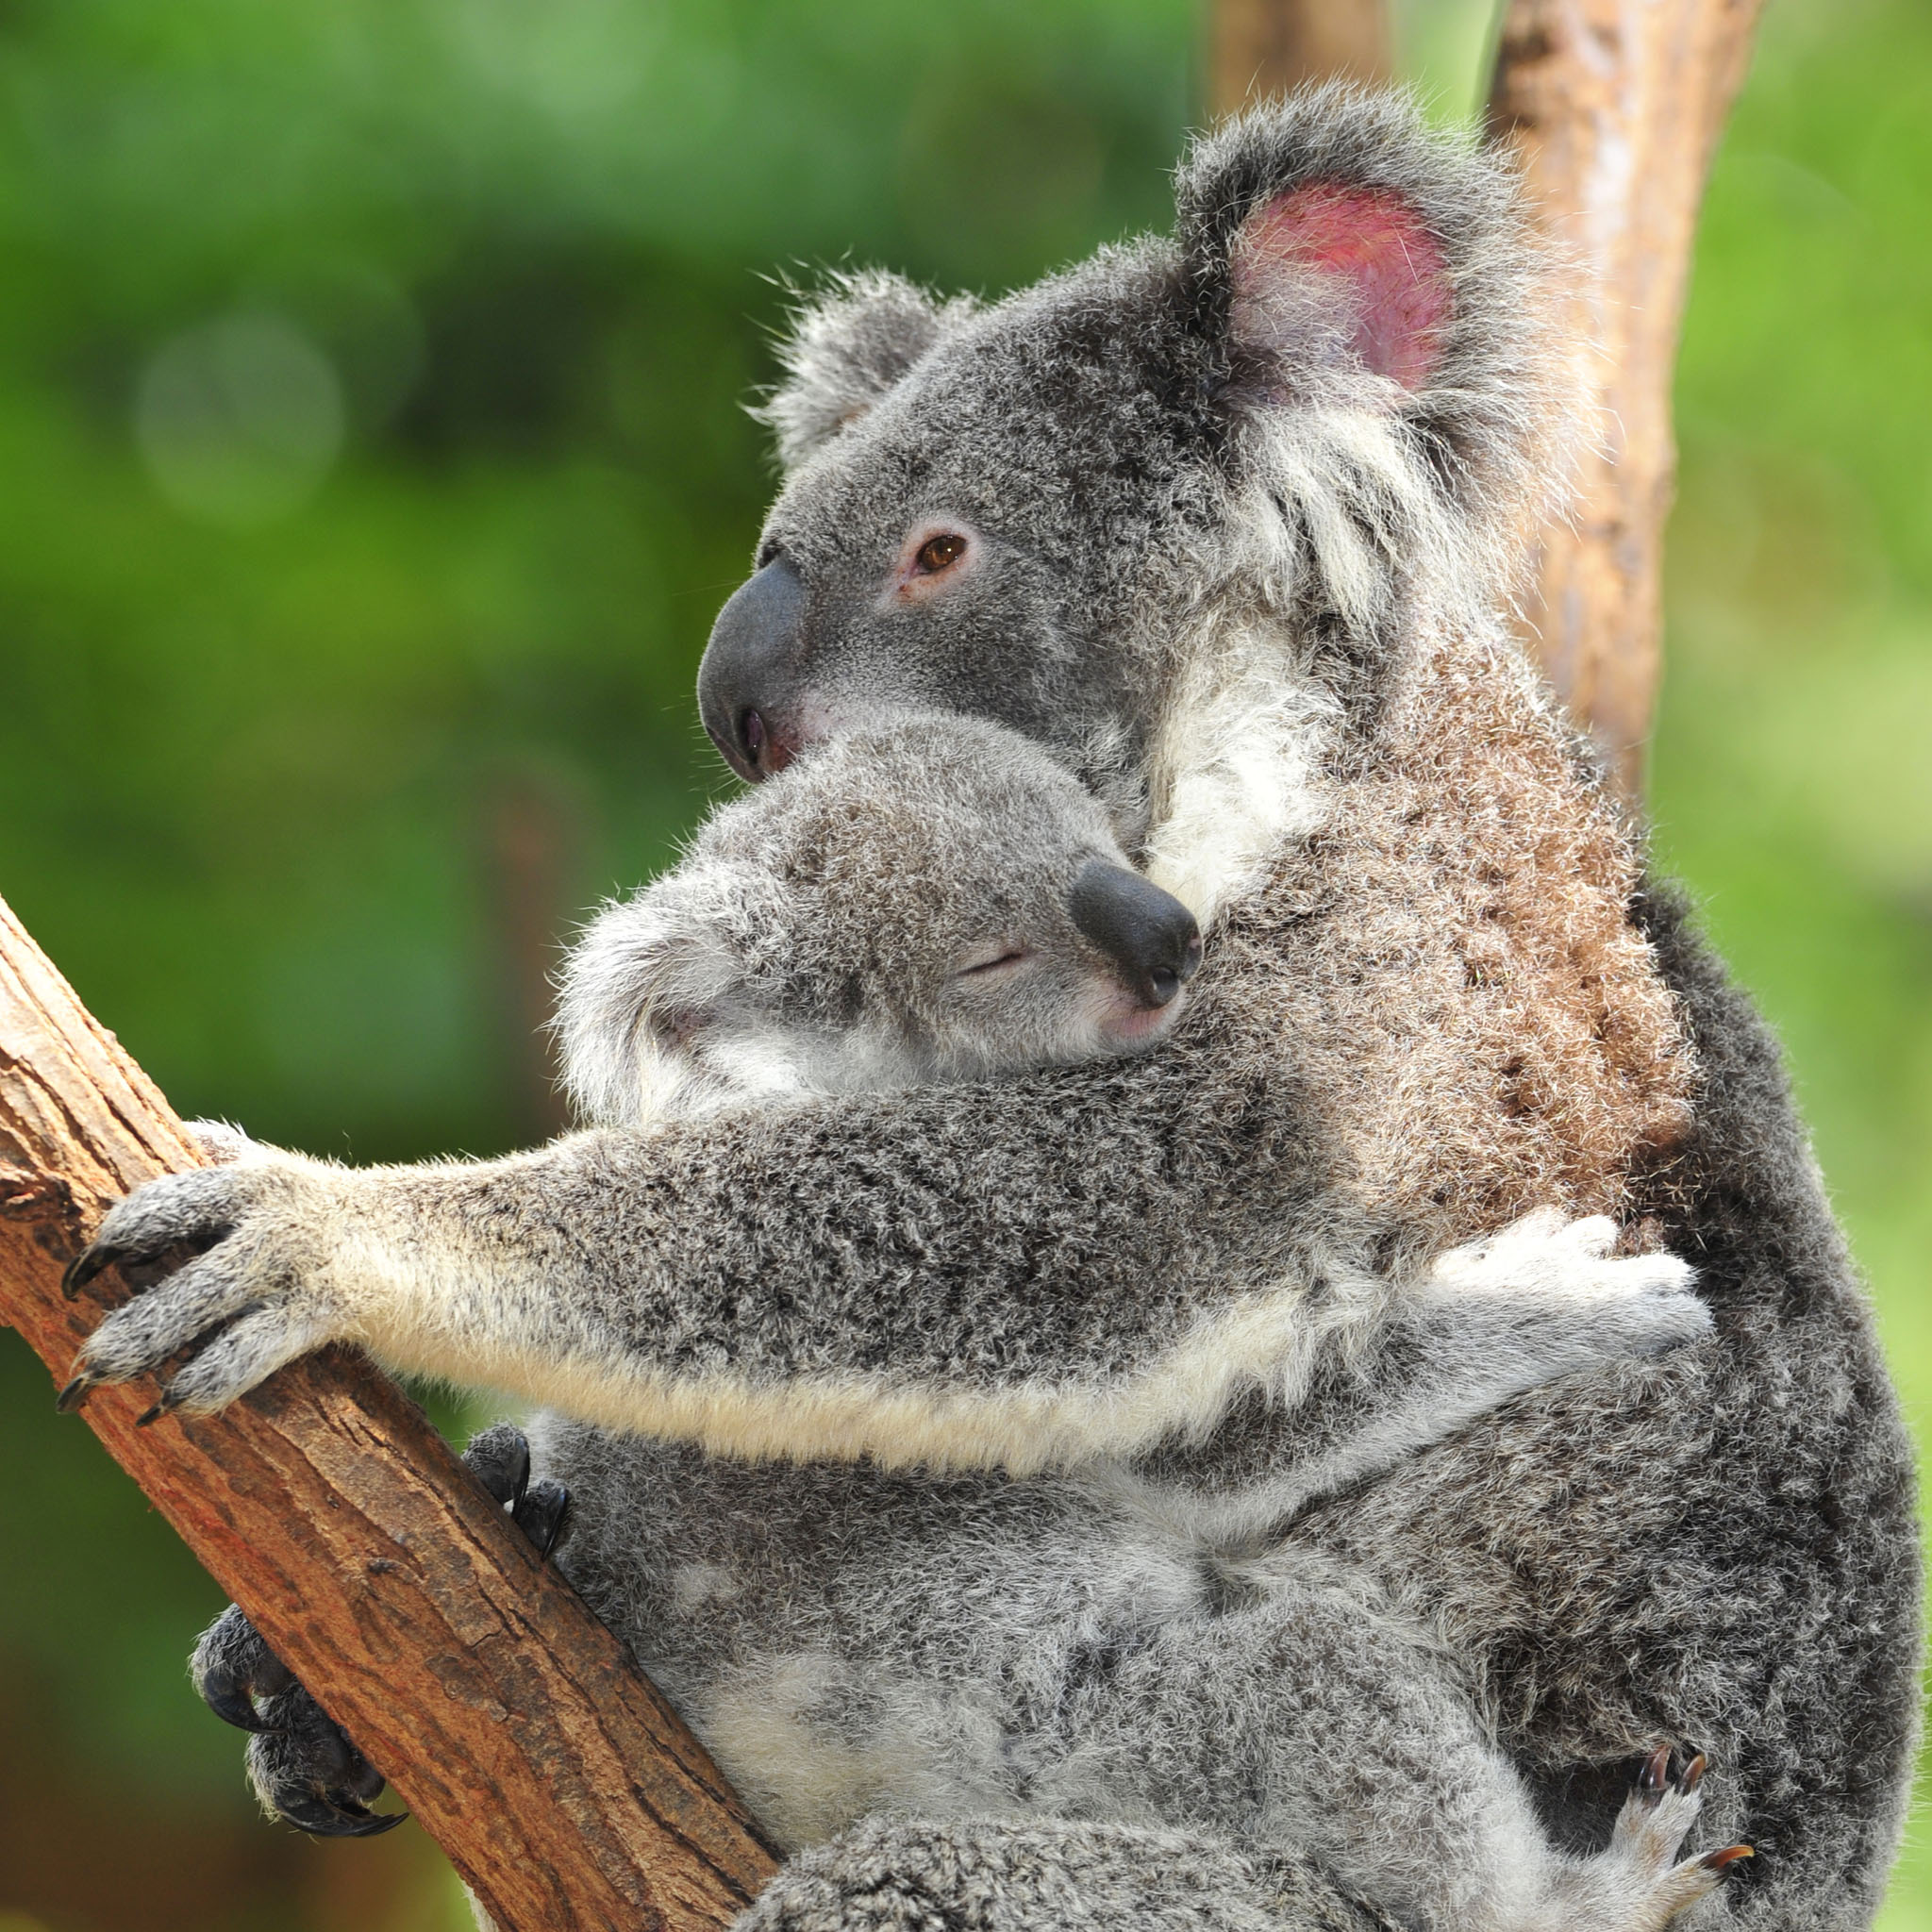 Baby Koala Wallpaper - WallpaperSafari